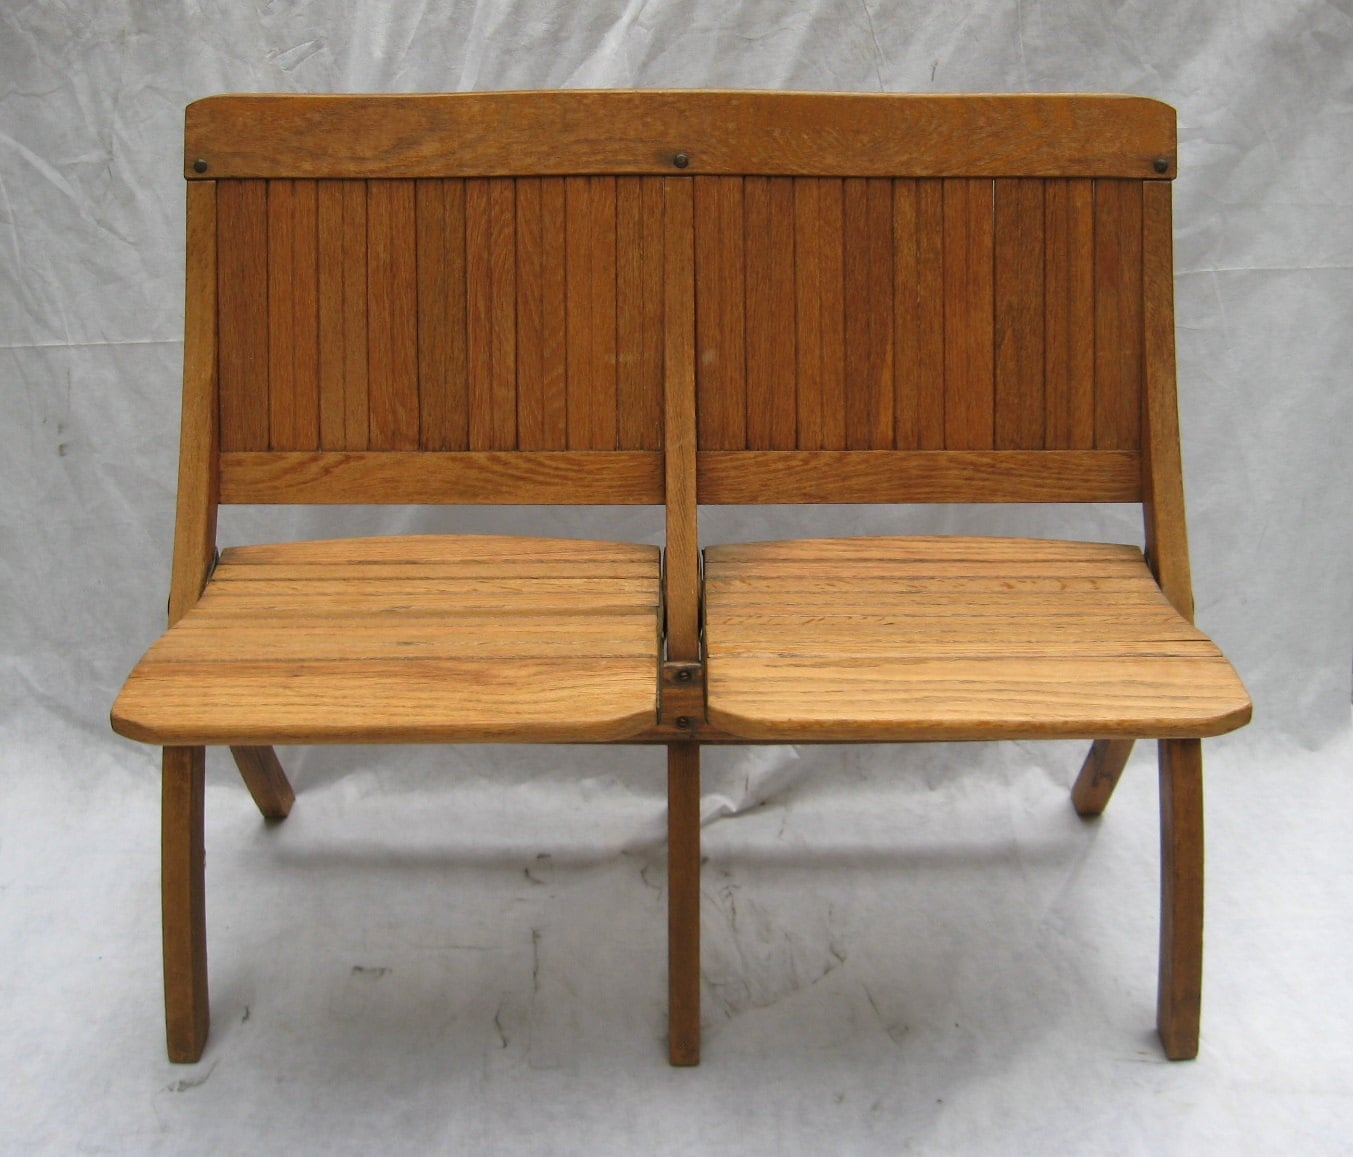 Vintage Wood Slat Folding Two Seat Bench Or Pew By 9livesdecor